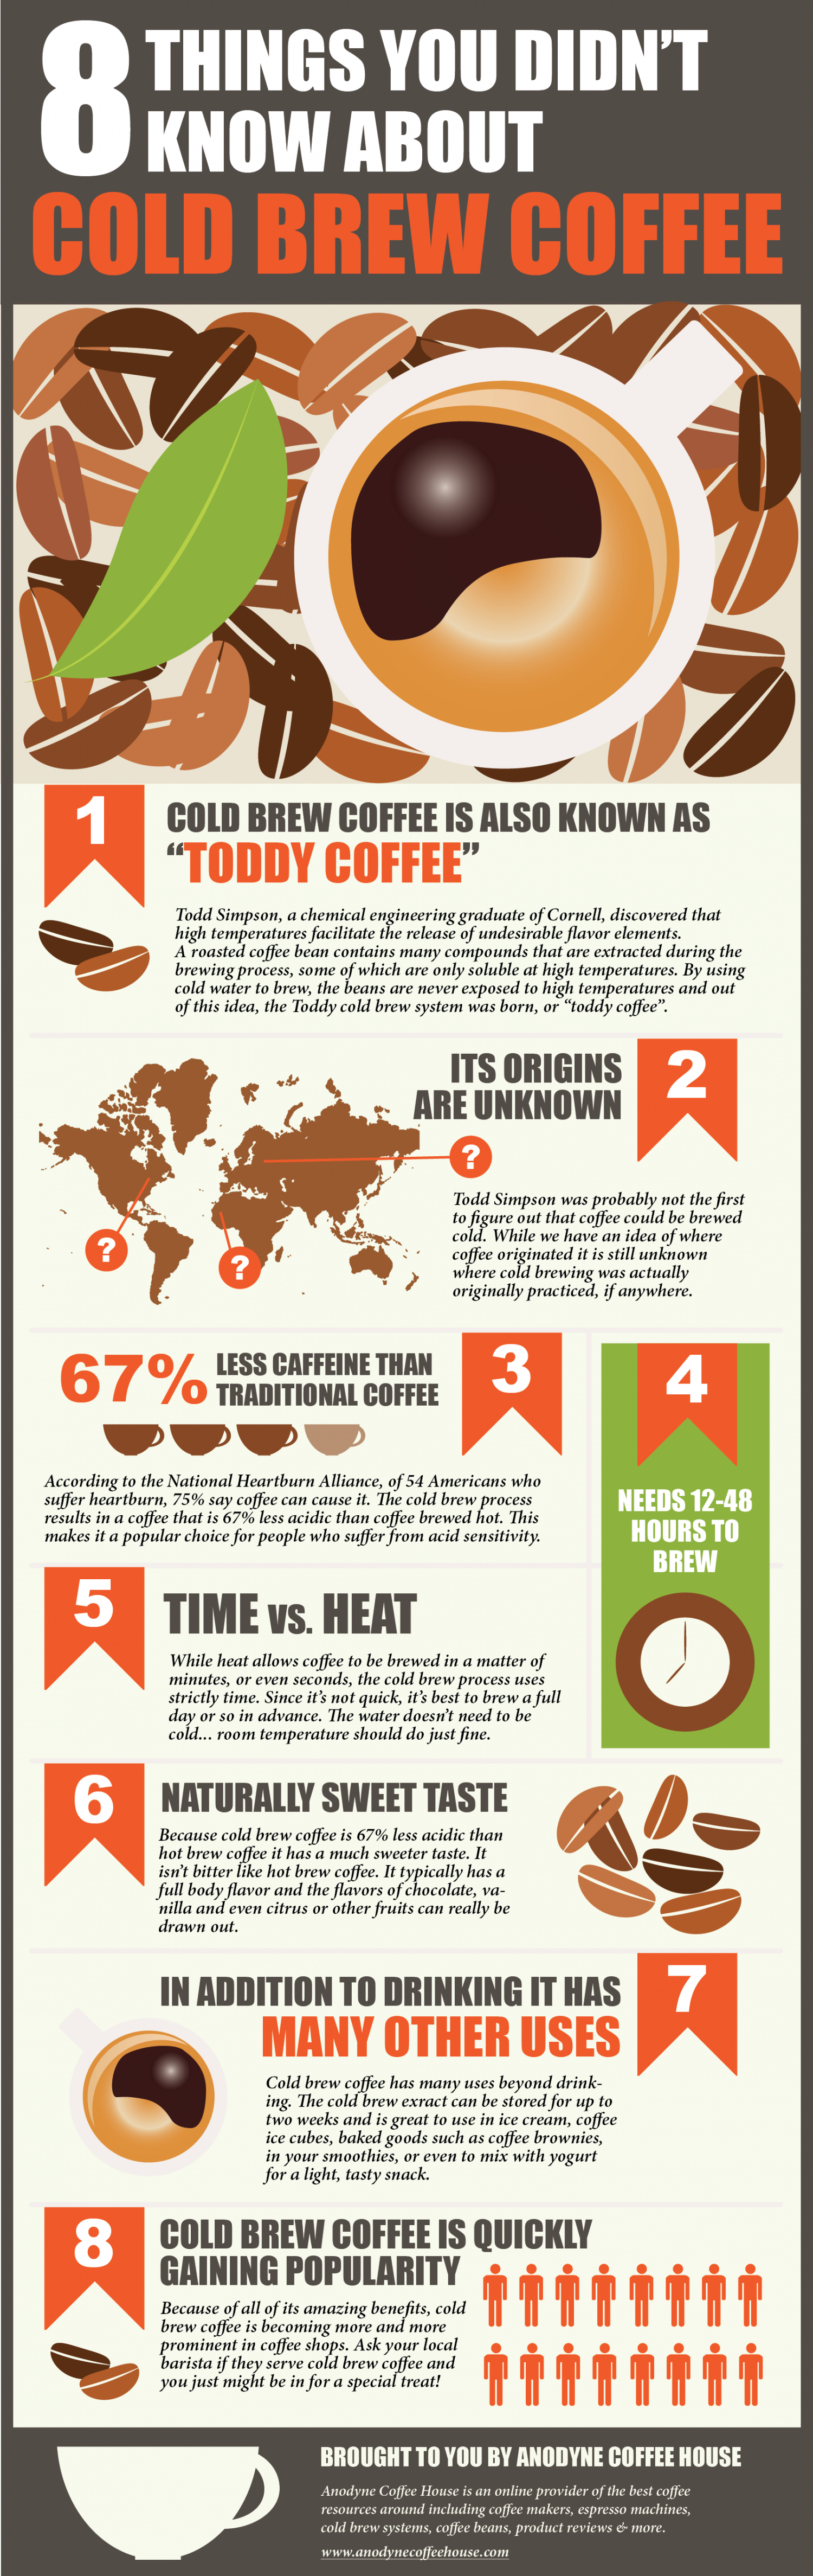 Eight Facts You Didn't Know About Cold Brew Coffee Infographic